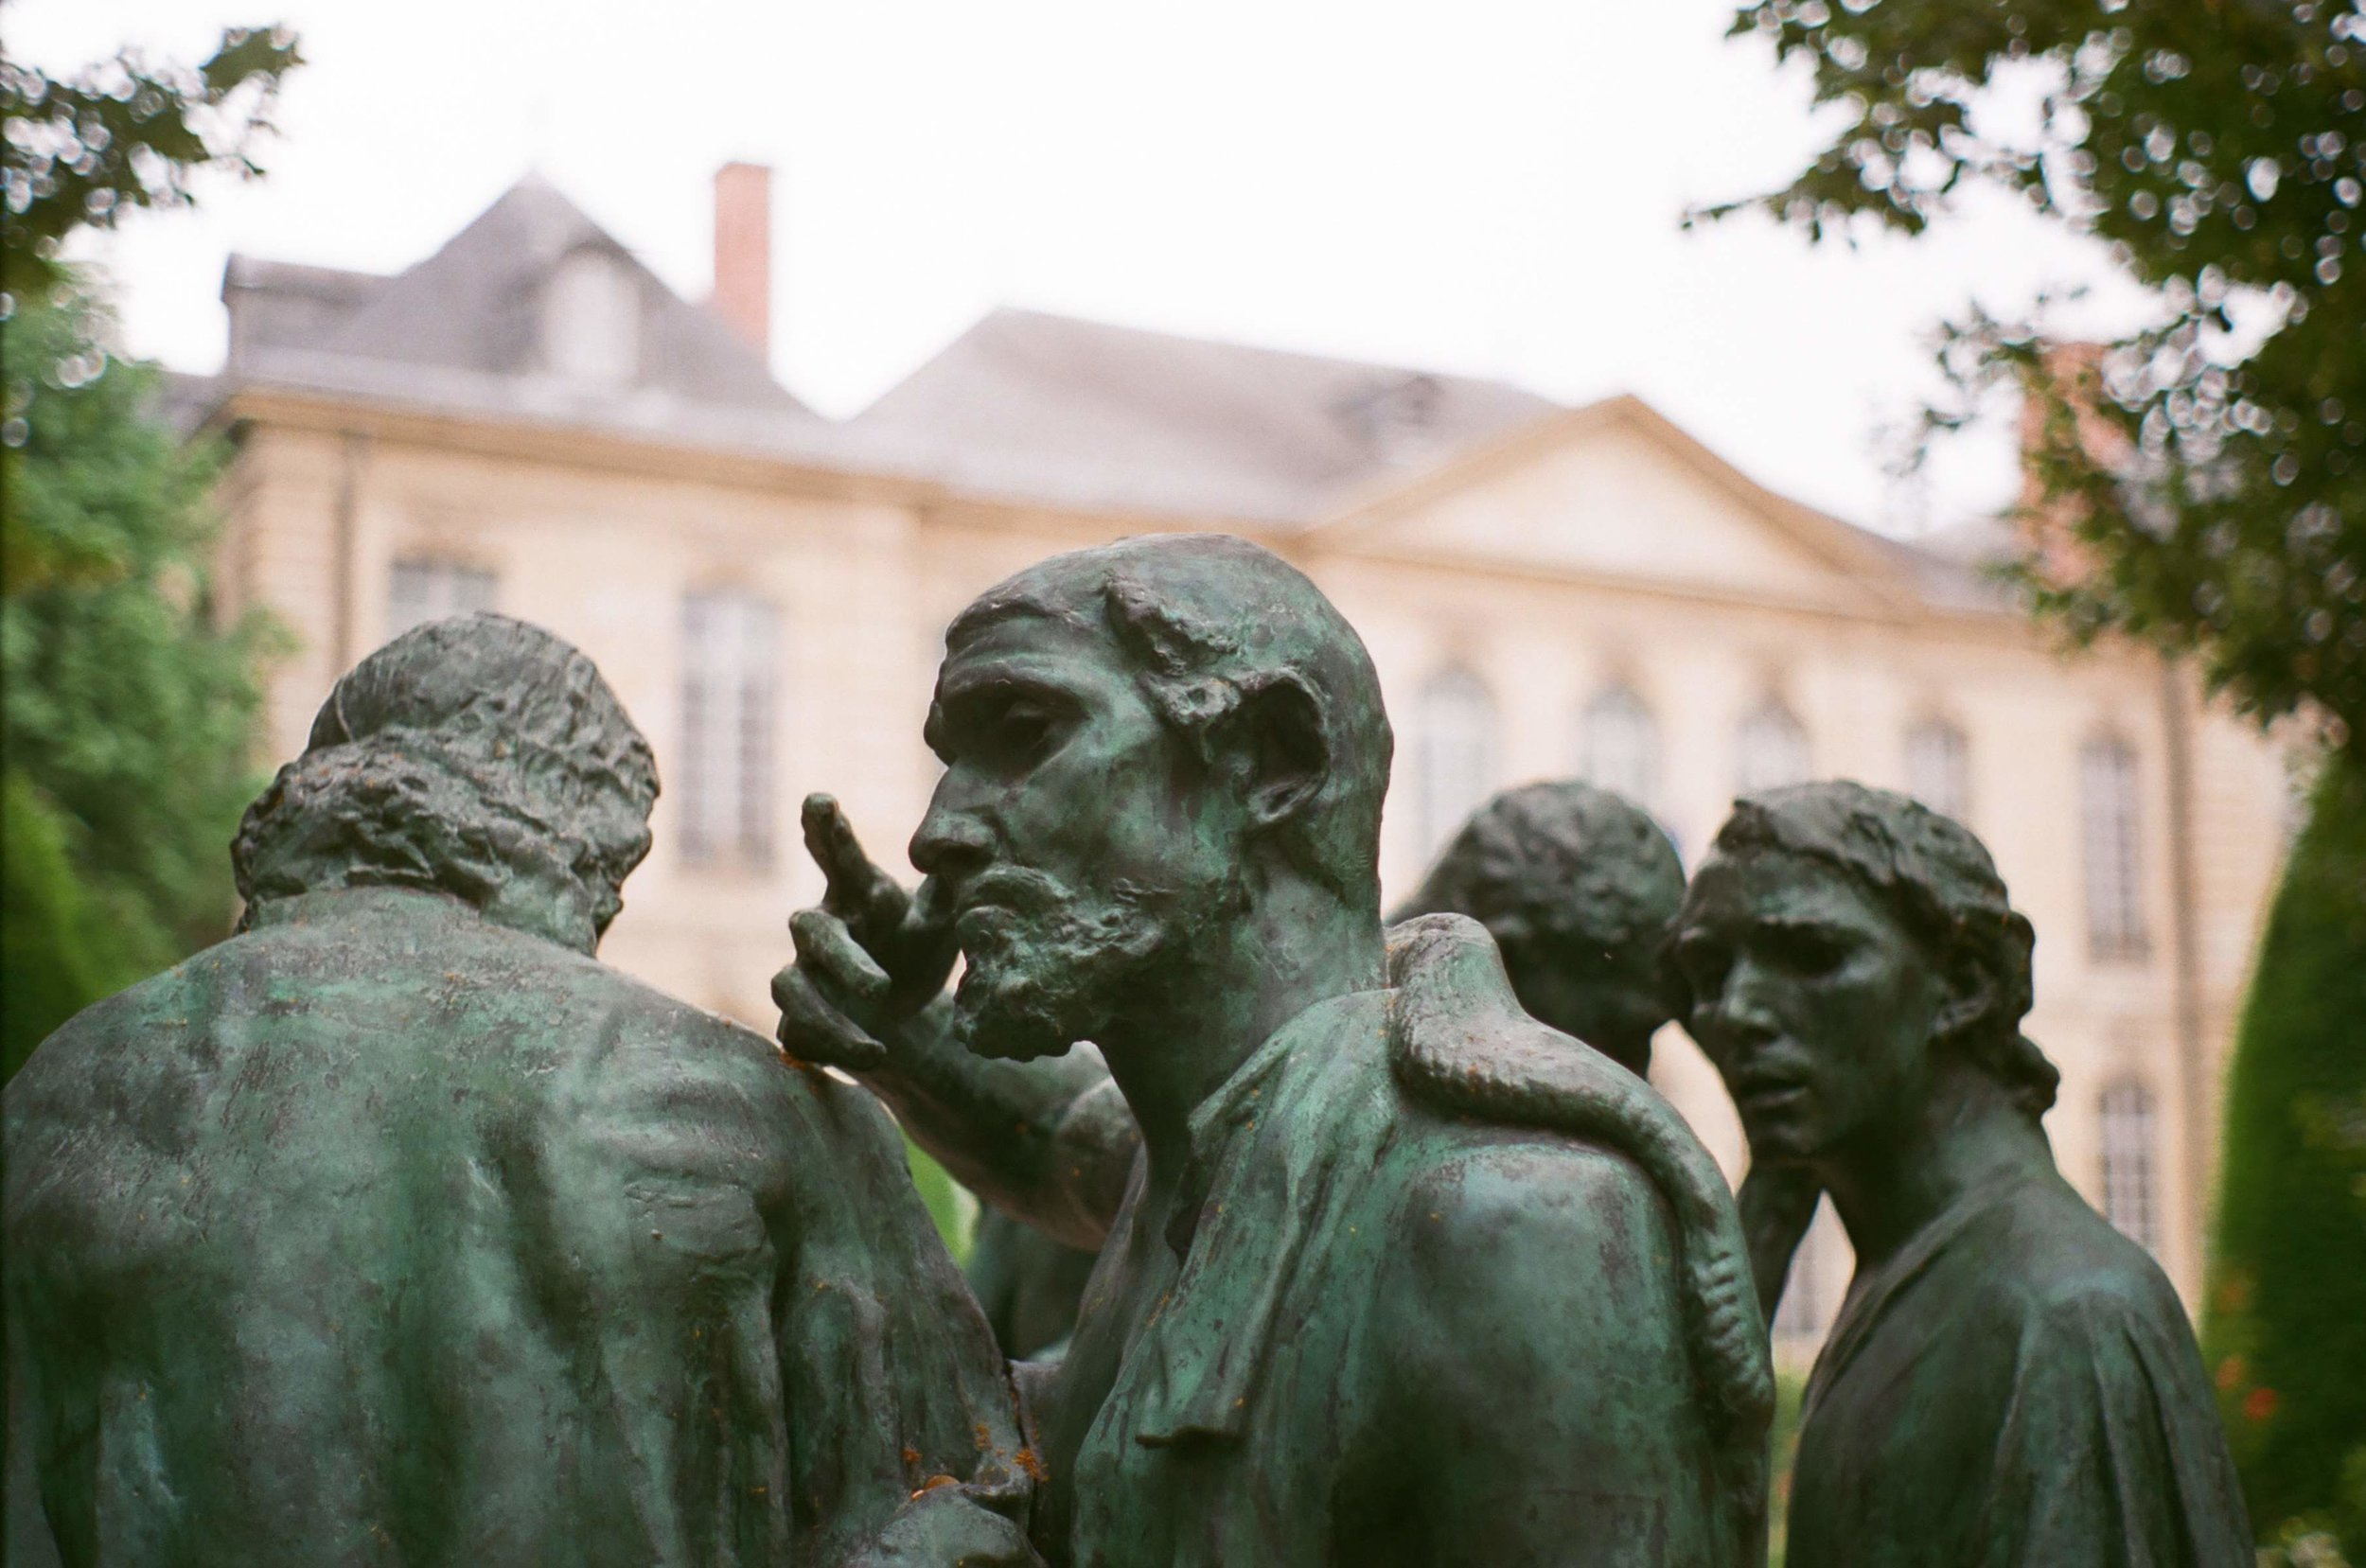 Though I never got to see photos I took inside the Rodin Museum, I still had photos from the grounds.